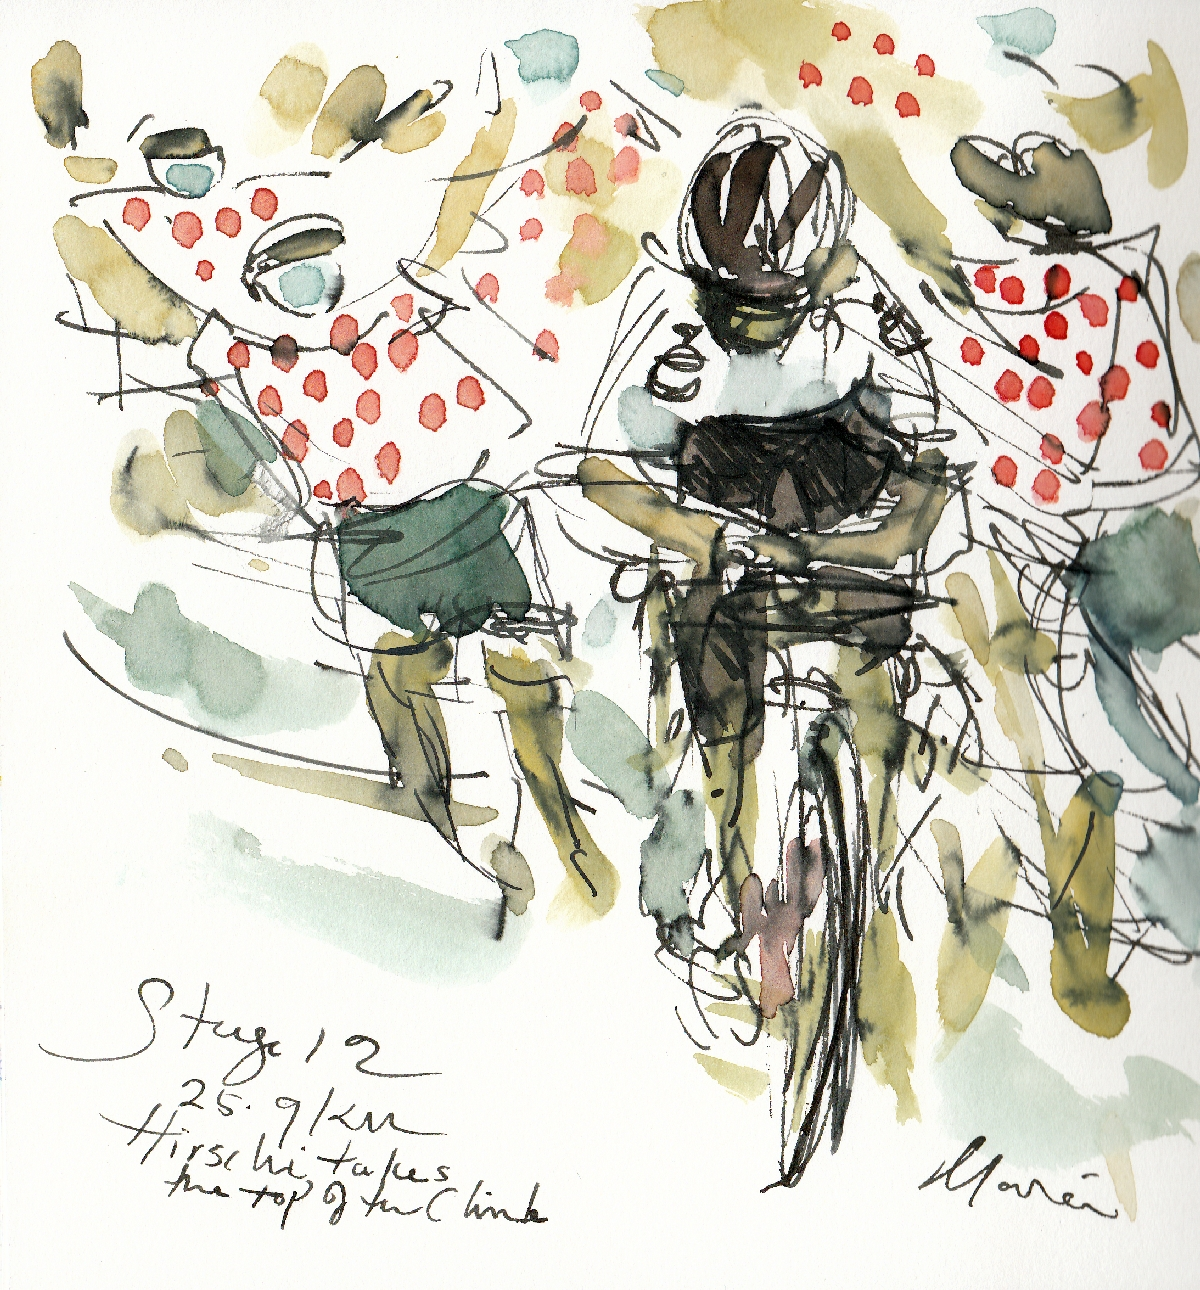 Hirschi takes the top of the climb, watercolour, pen and ink by Maxine Dodd